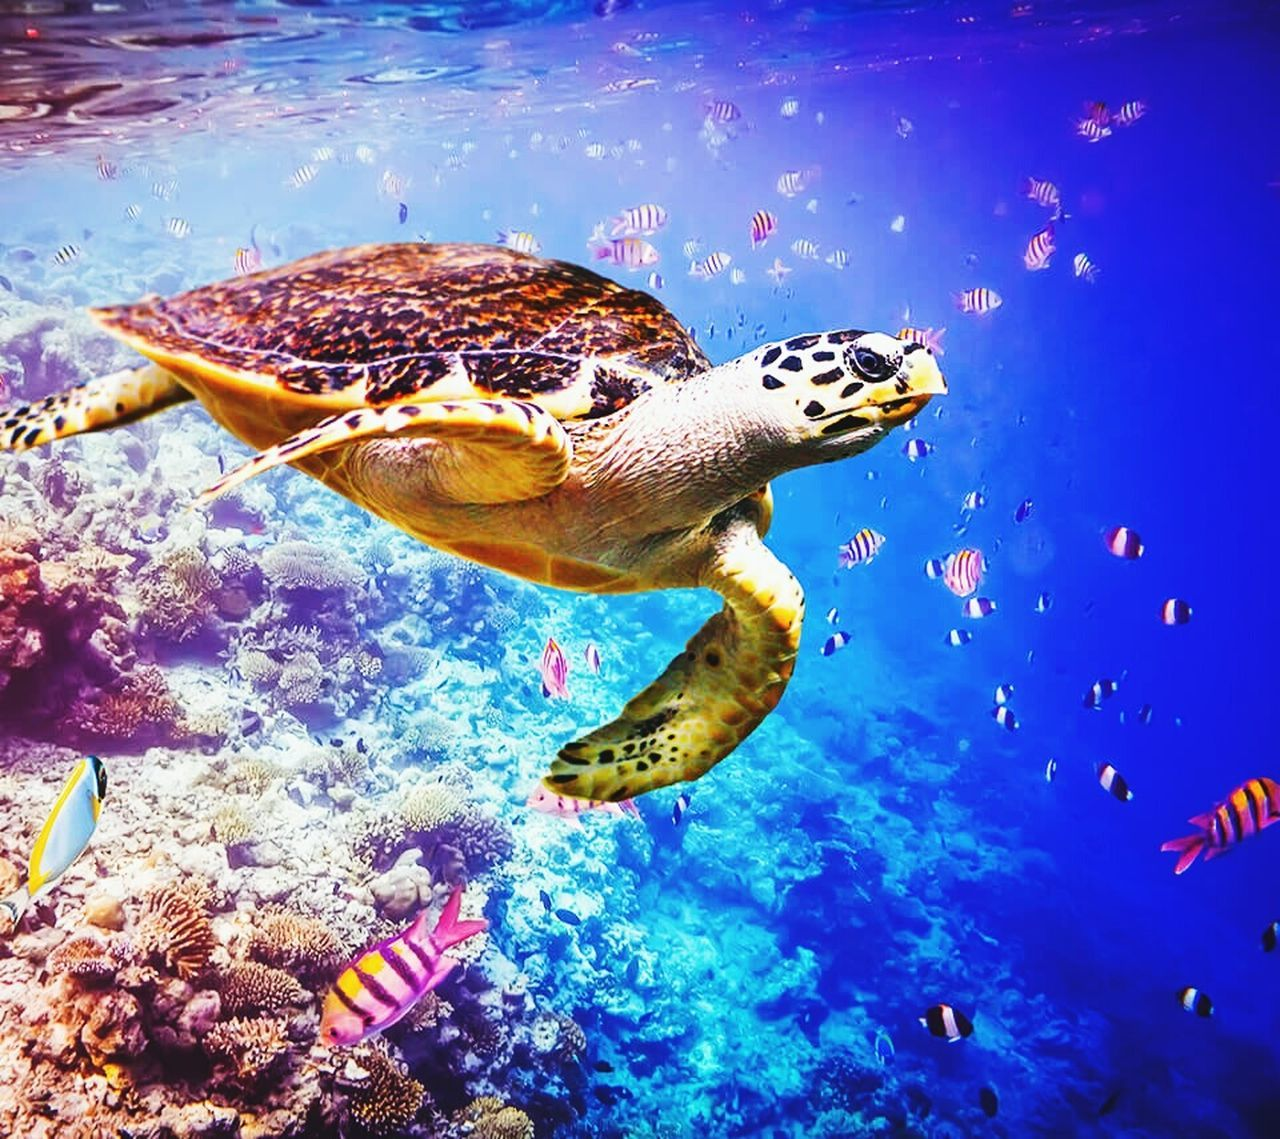 animal themes, swimming, sea life, underwater, water, animals in the wild, fish, one animal, animals in captivity, aquarium, turtle, sea turtle, undersea, animal wildlife, sea, no people, indoors, nature, blue, coral, reptile, beauty in nature, day, close-up